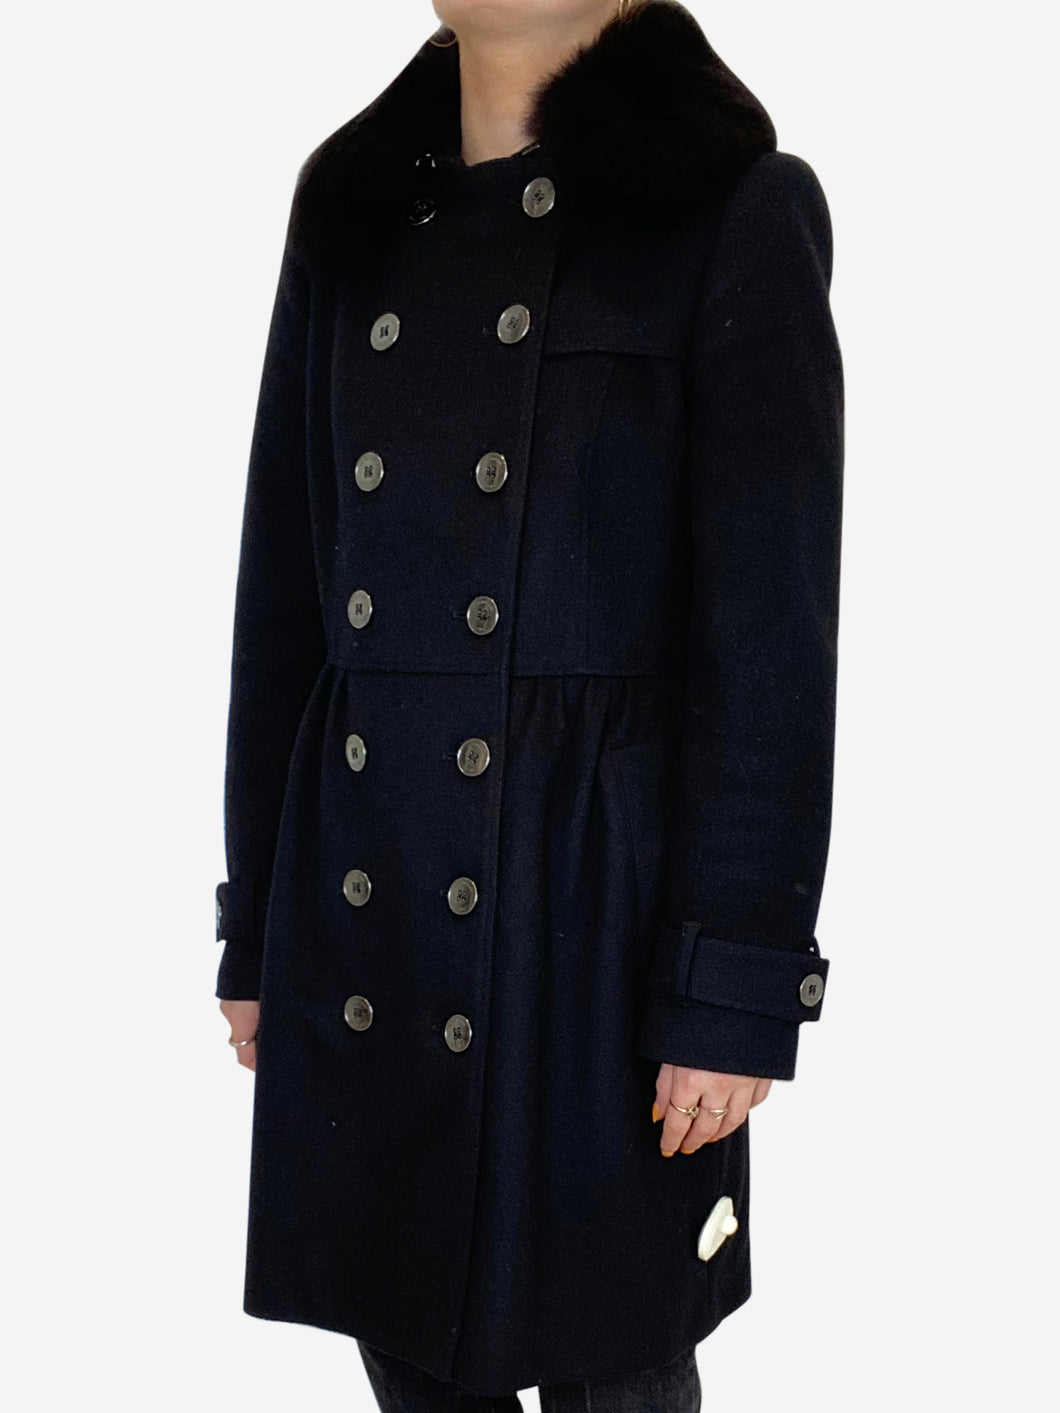 Black wool double breasted overcoat with fur collar- size UK 6